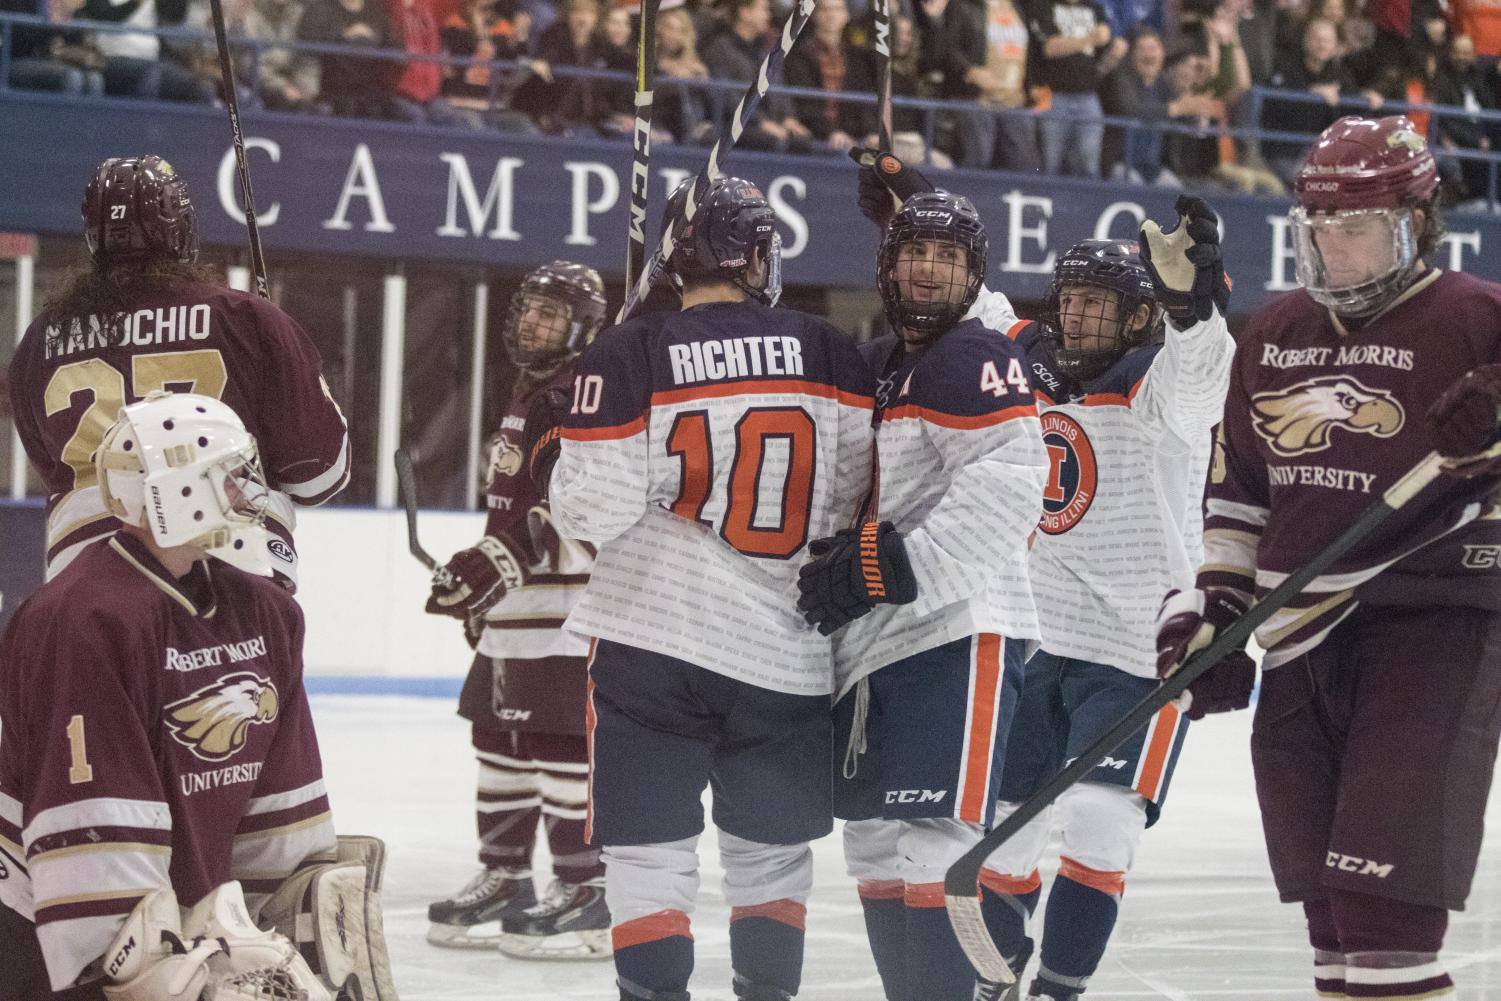 Drew Richter, Luke Forfar and Stephen Quinn celebrate a goal against Robert Morris at the Ice Arena on Nov. 2. The Illini shut out the team 6-0.